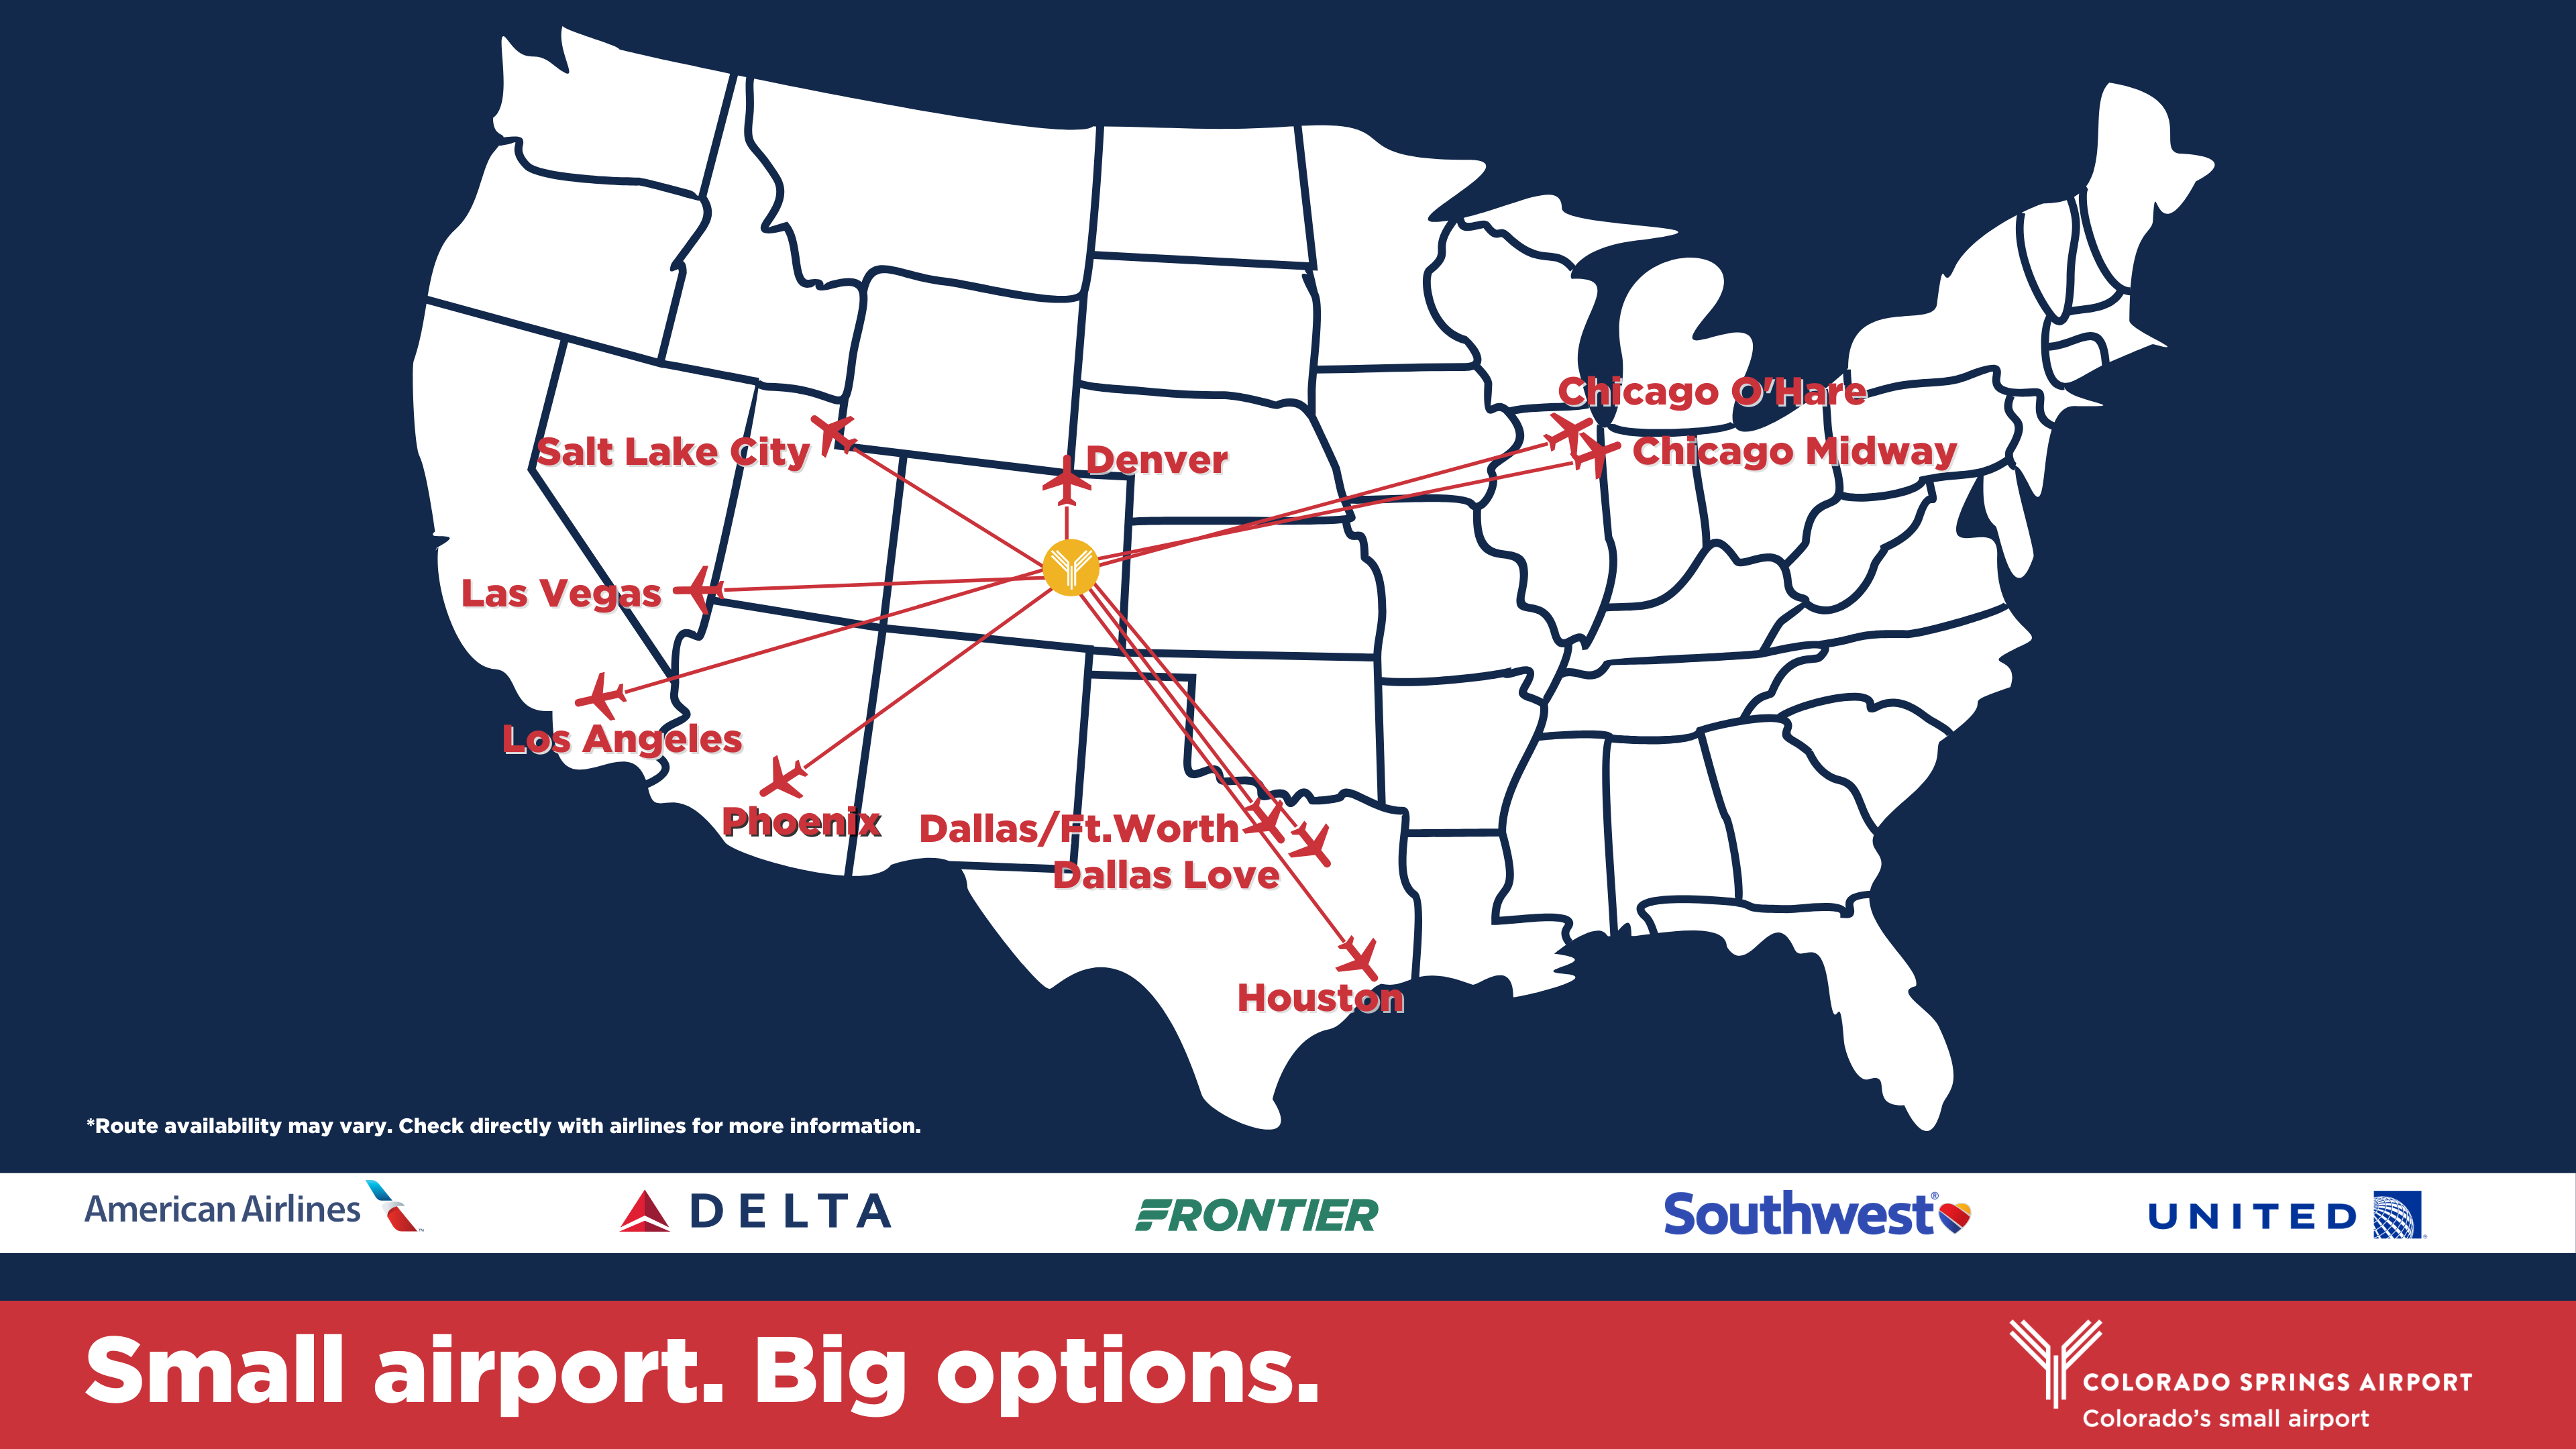 map showing flights from Colorado Springs to the following destinations: Denver, Salt Lake City, Las Vegas, LA, Phoenix, Dallas/Fort Worth, Dallas Love, Houston, Orlando, Atlanta, Chicago Midway, Chicago O'Hare